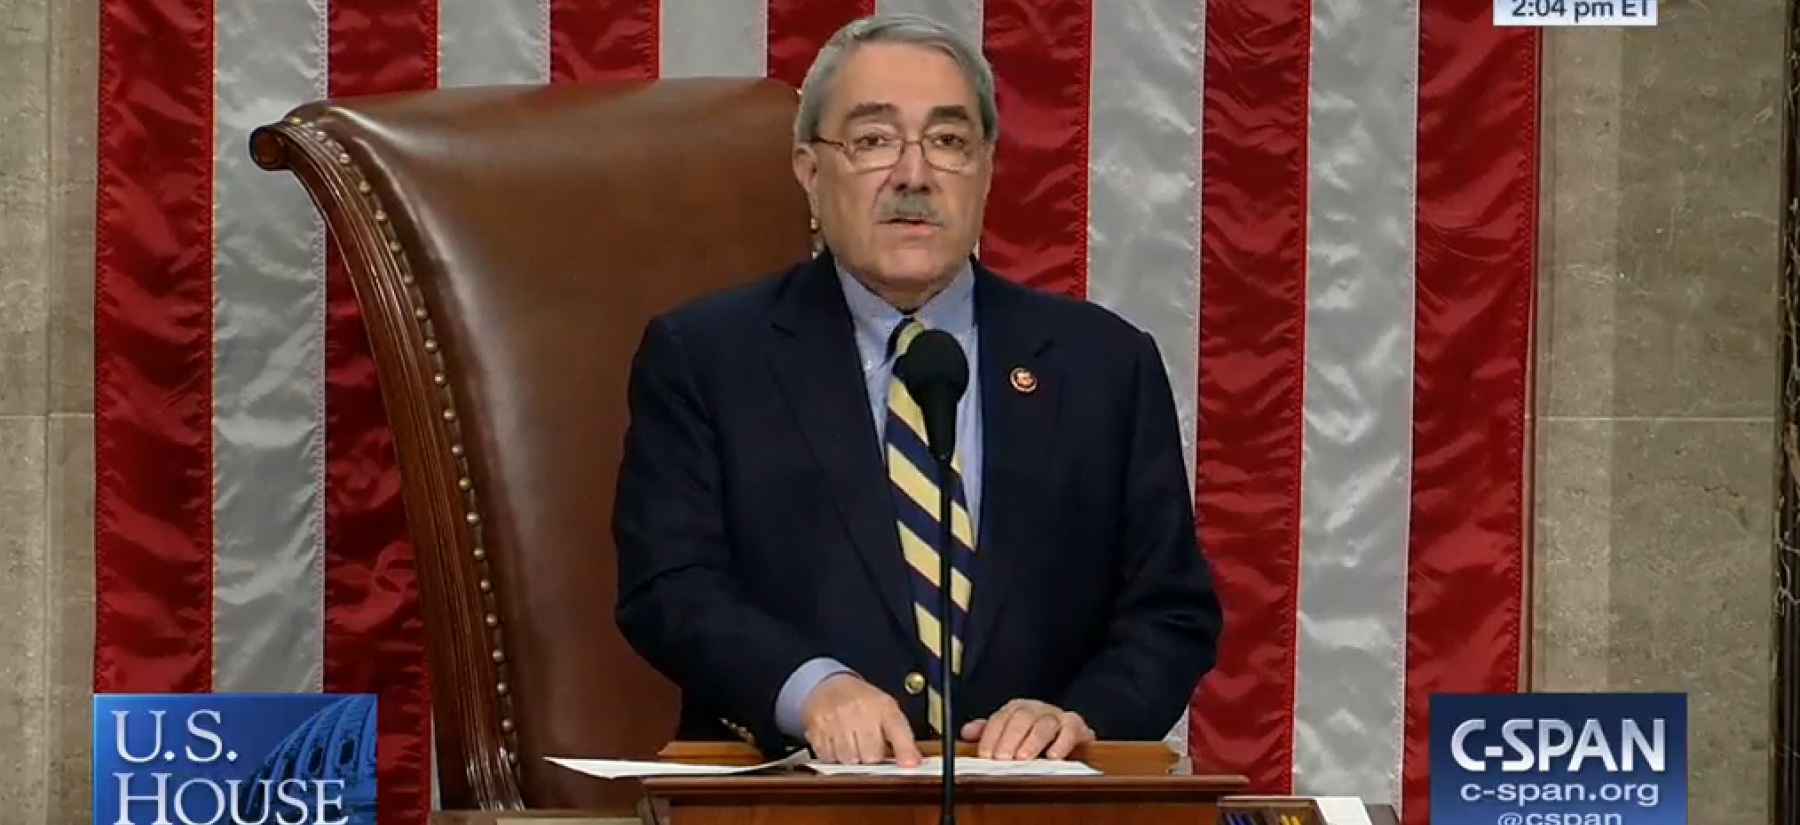 Butterfield Presides over U.S. House of Representatives